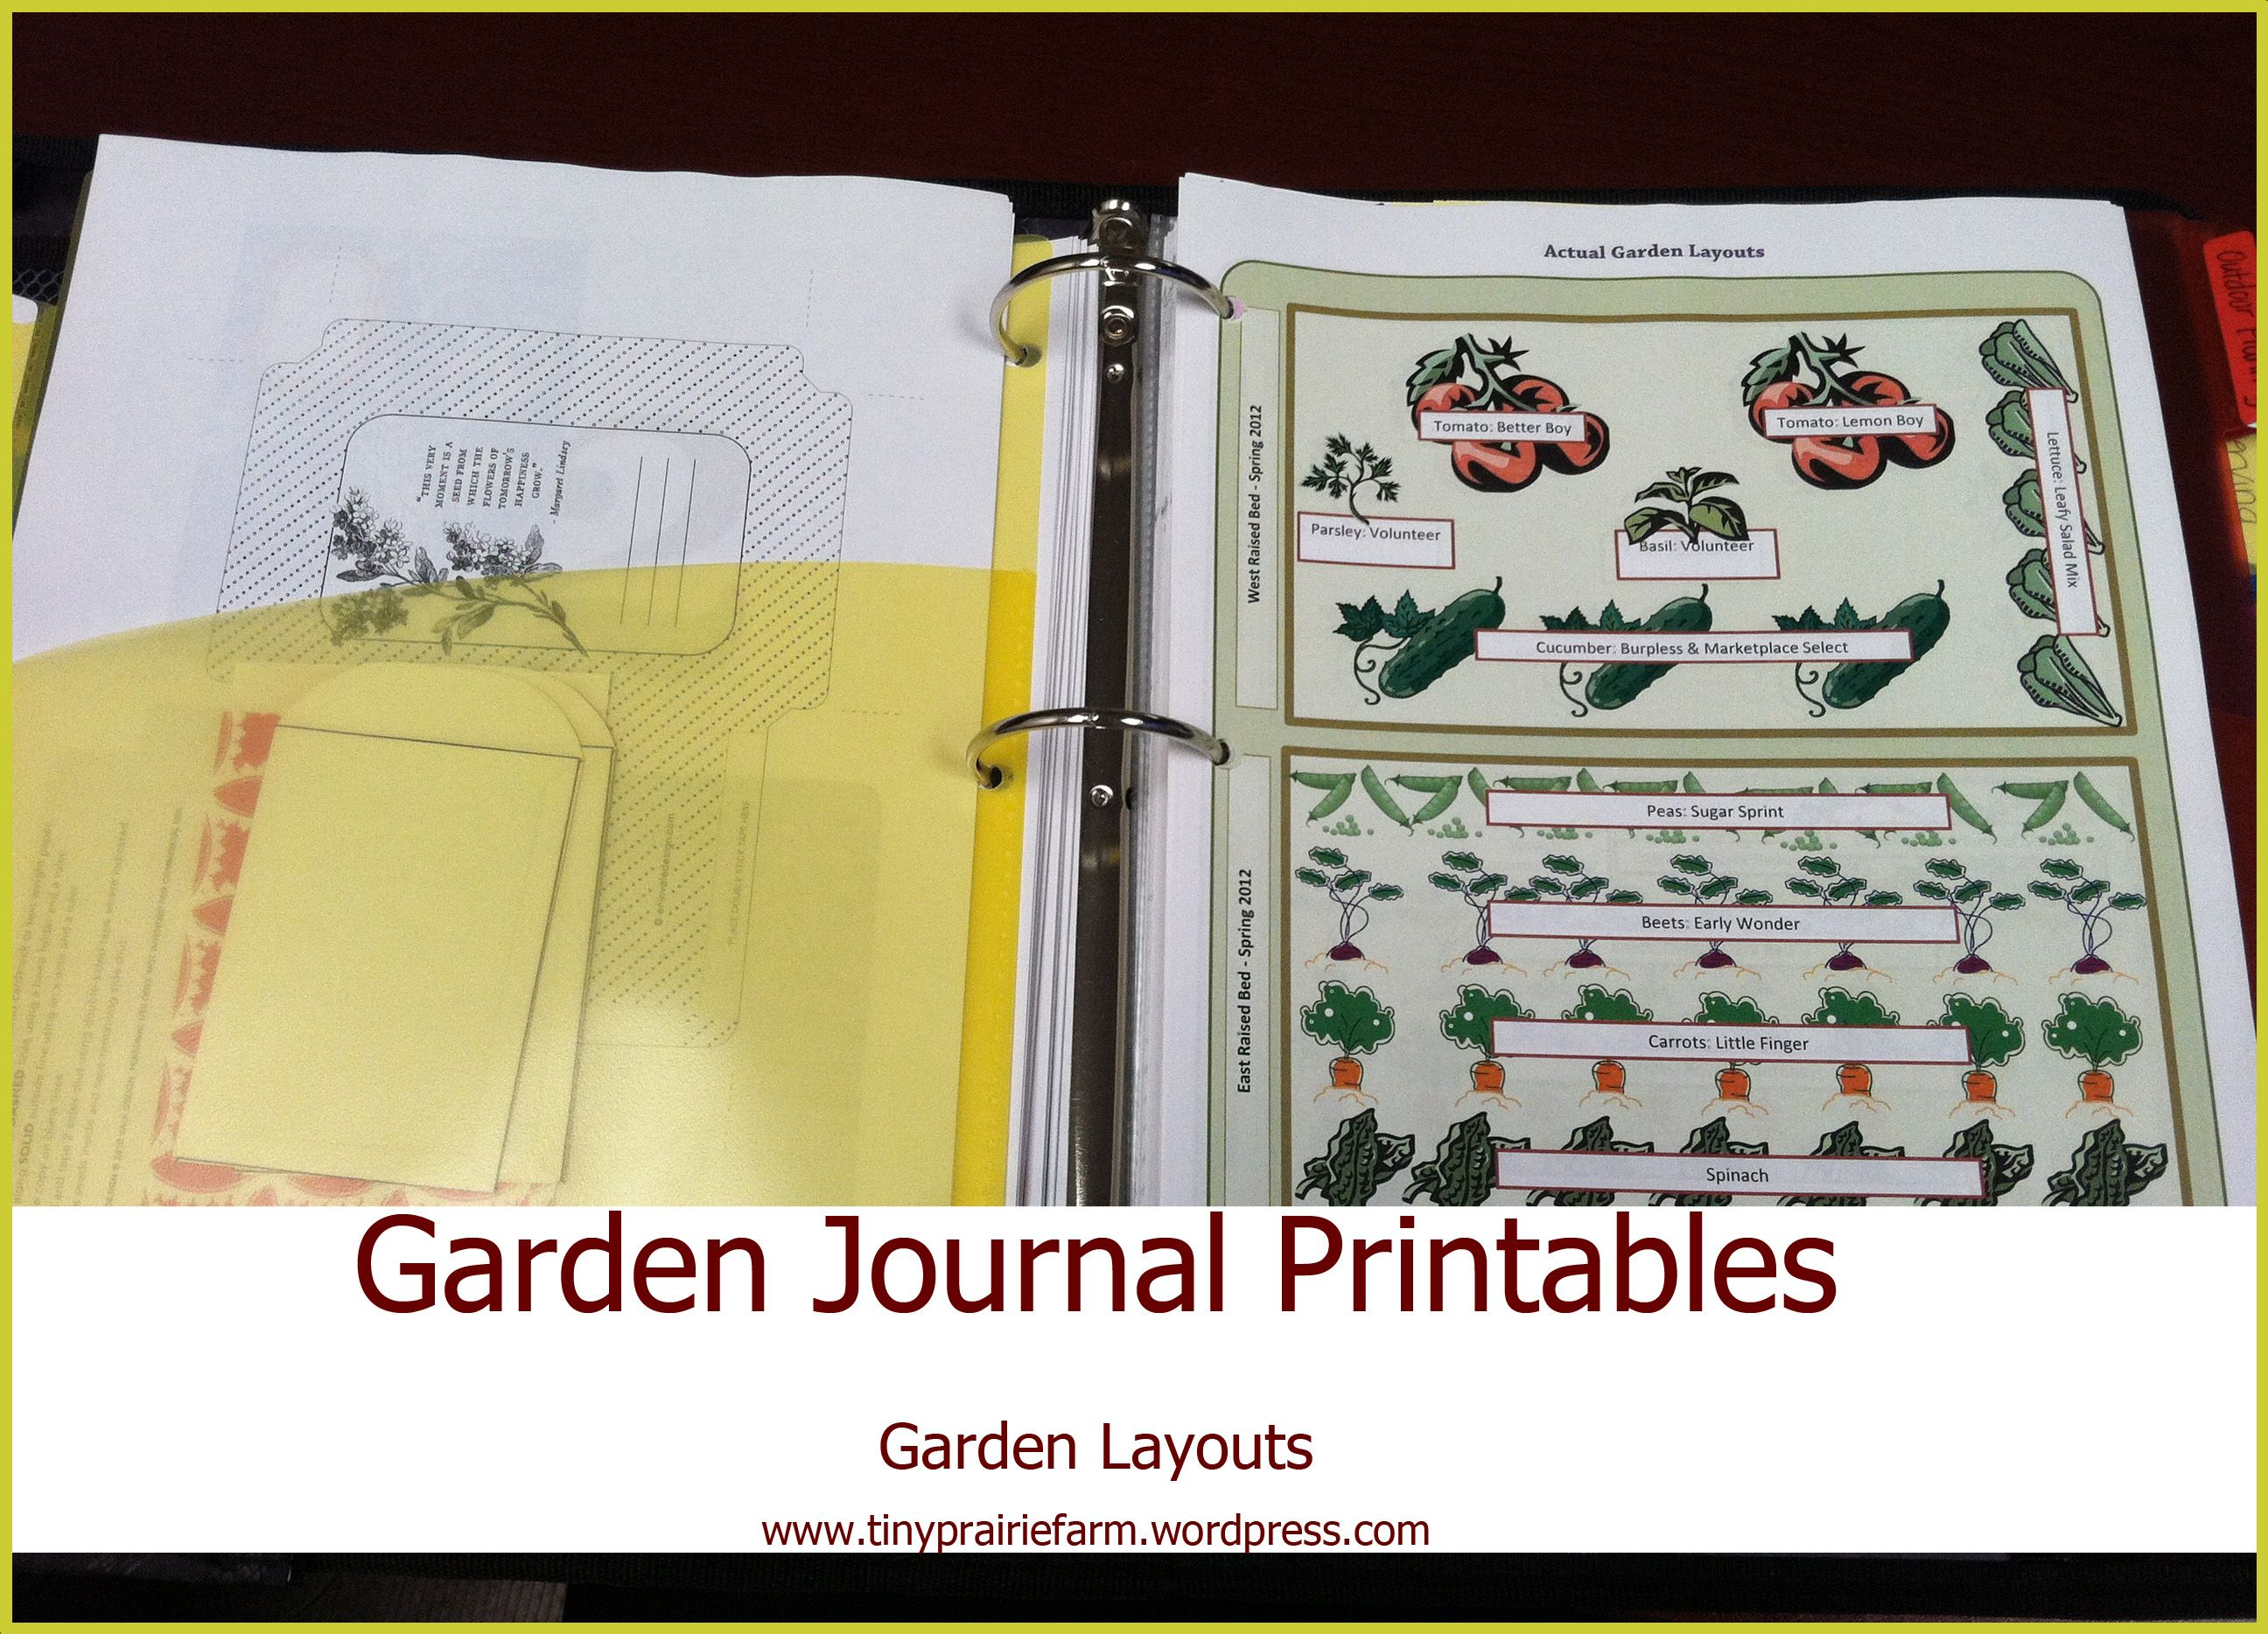 Garden Planning My Garden Journal – Planning My Garden